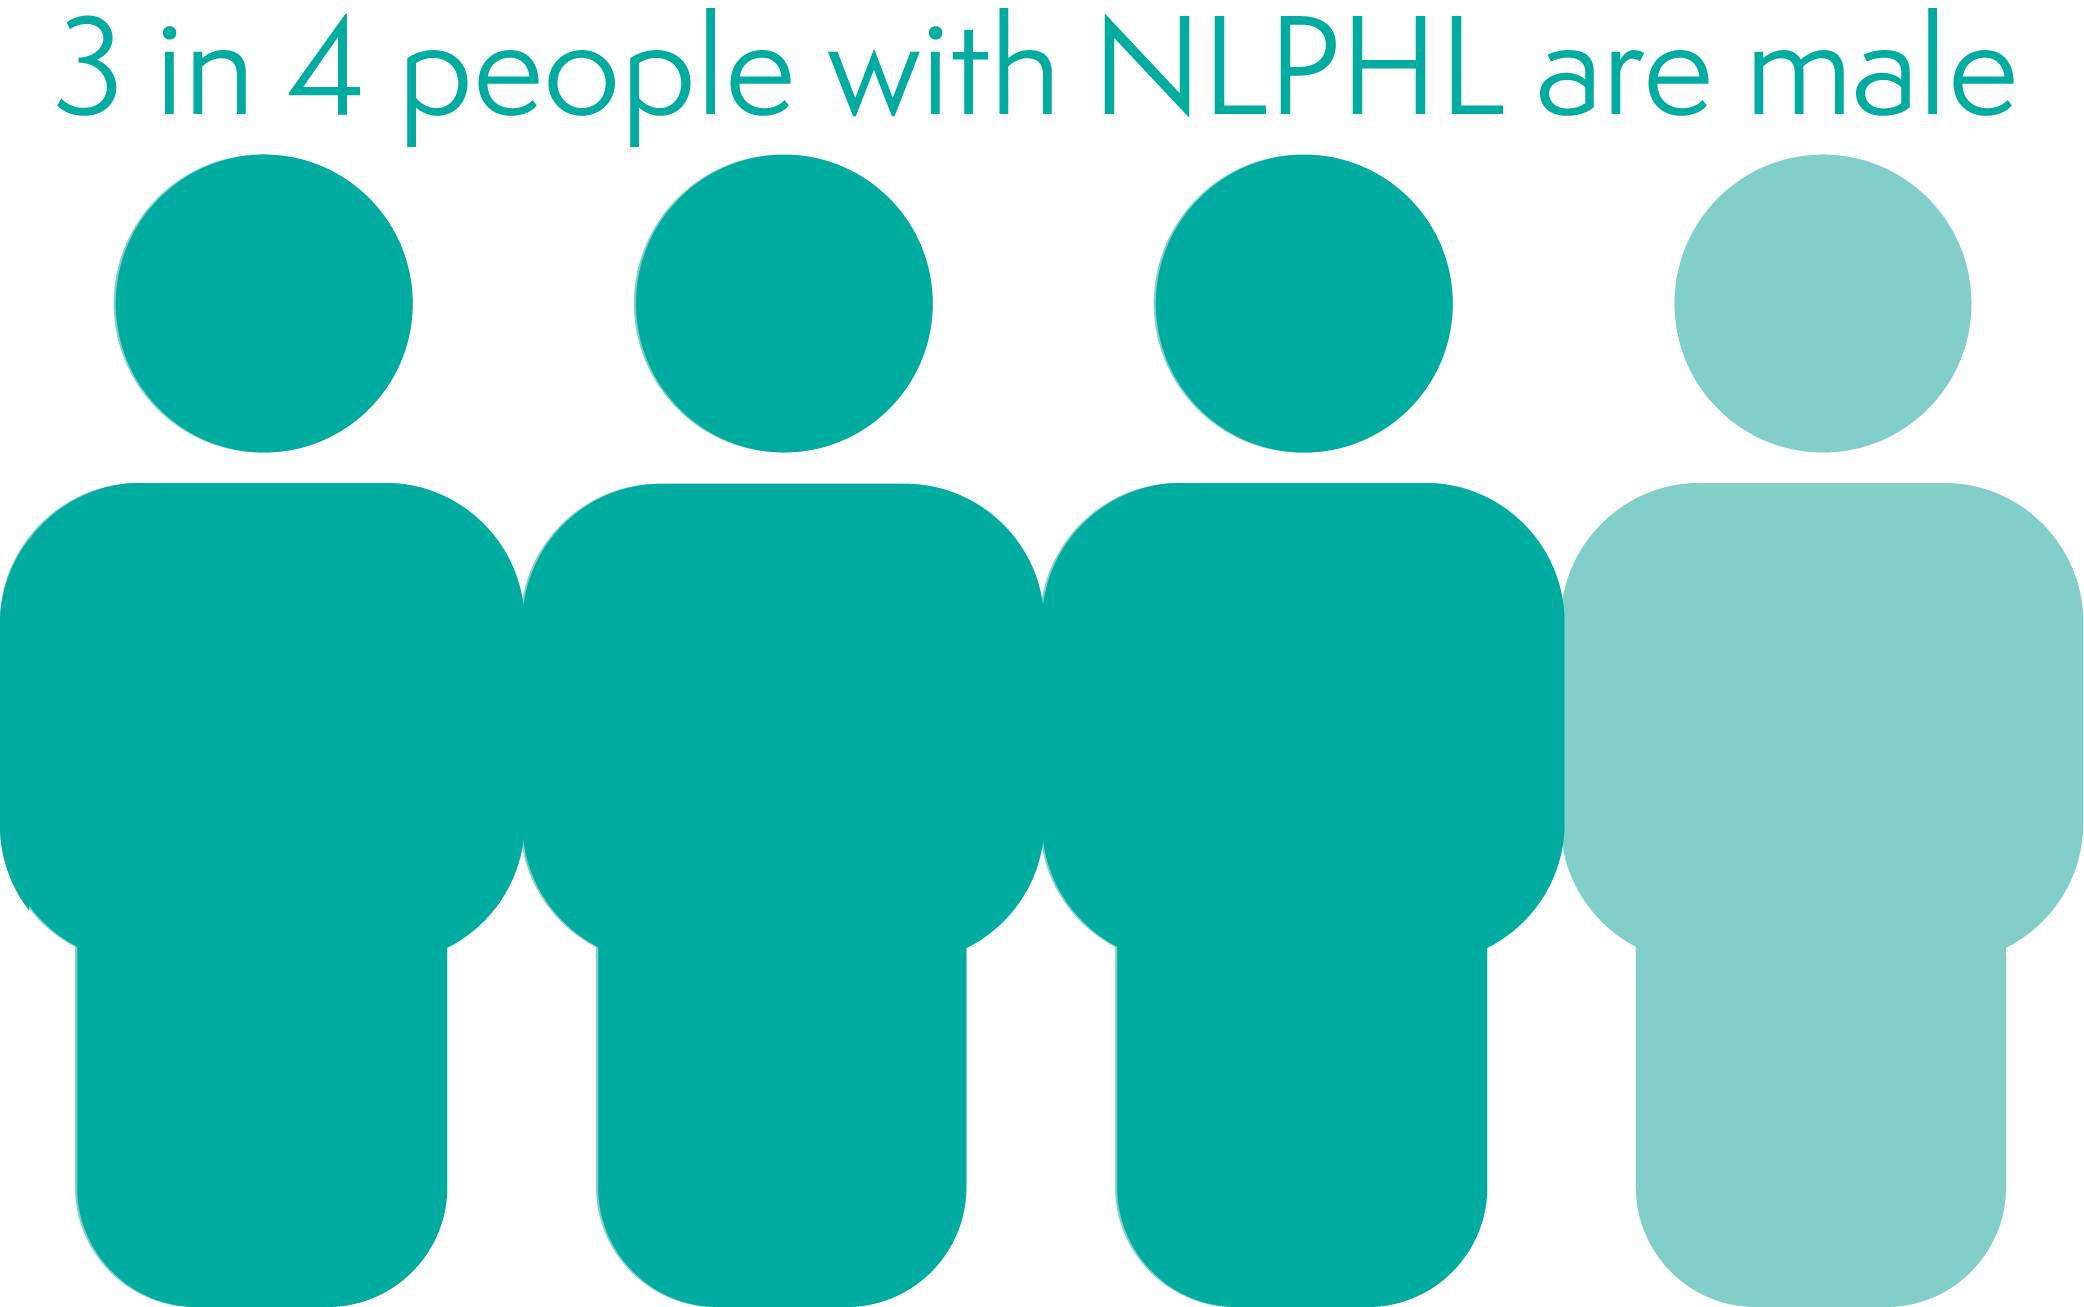 Statistic showing 3 in 4 people with NLPHL are male.